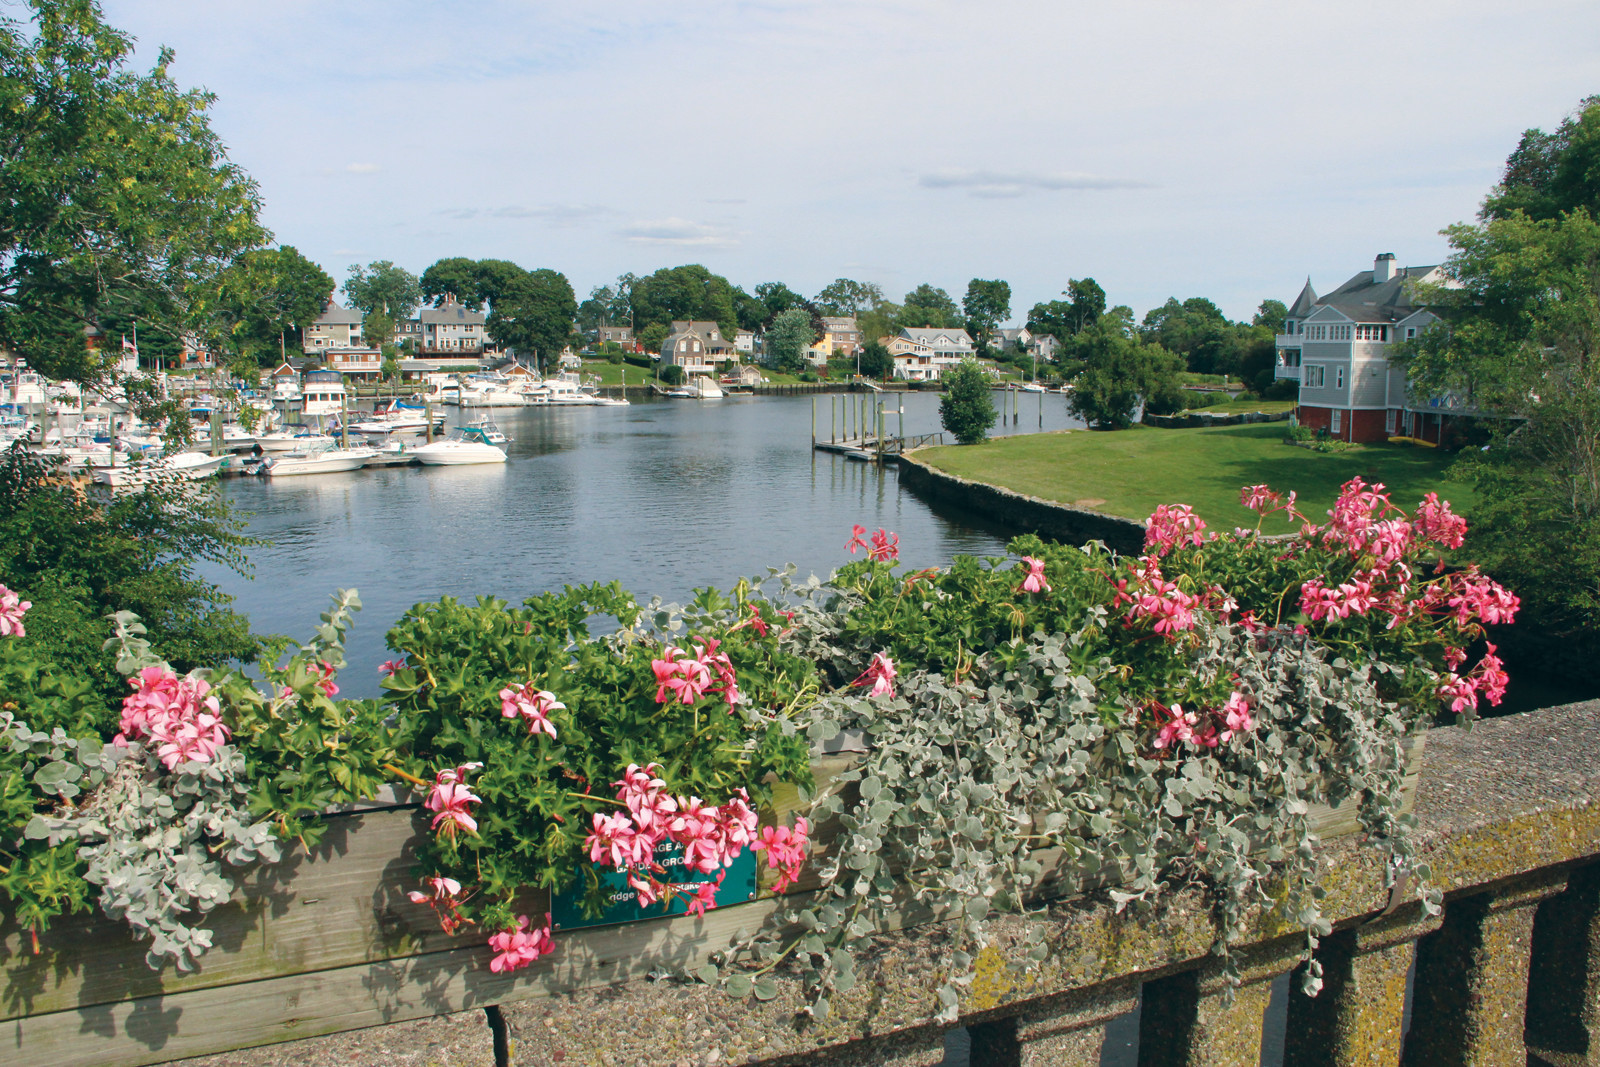 LINKING TWO MUNICIPALITIES: It's Pawtuxet no matter what side of the bridge you're standing on.